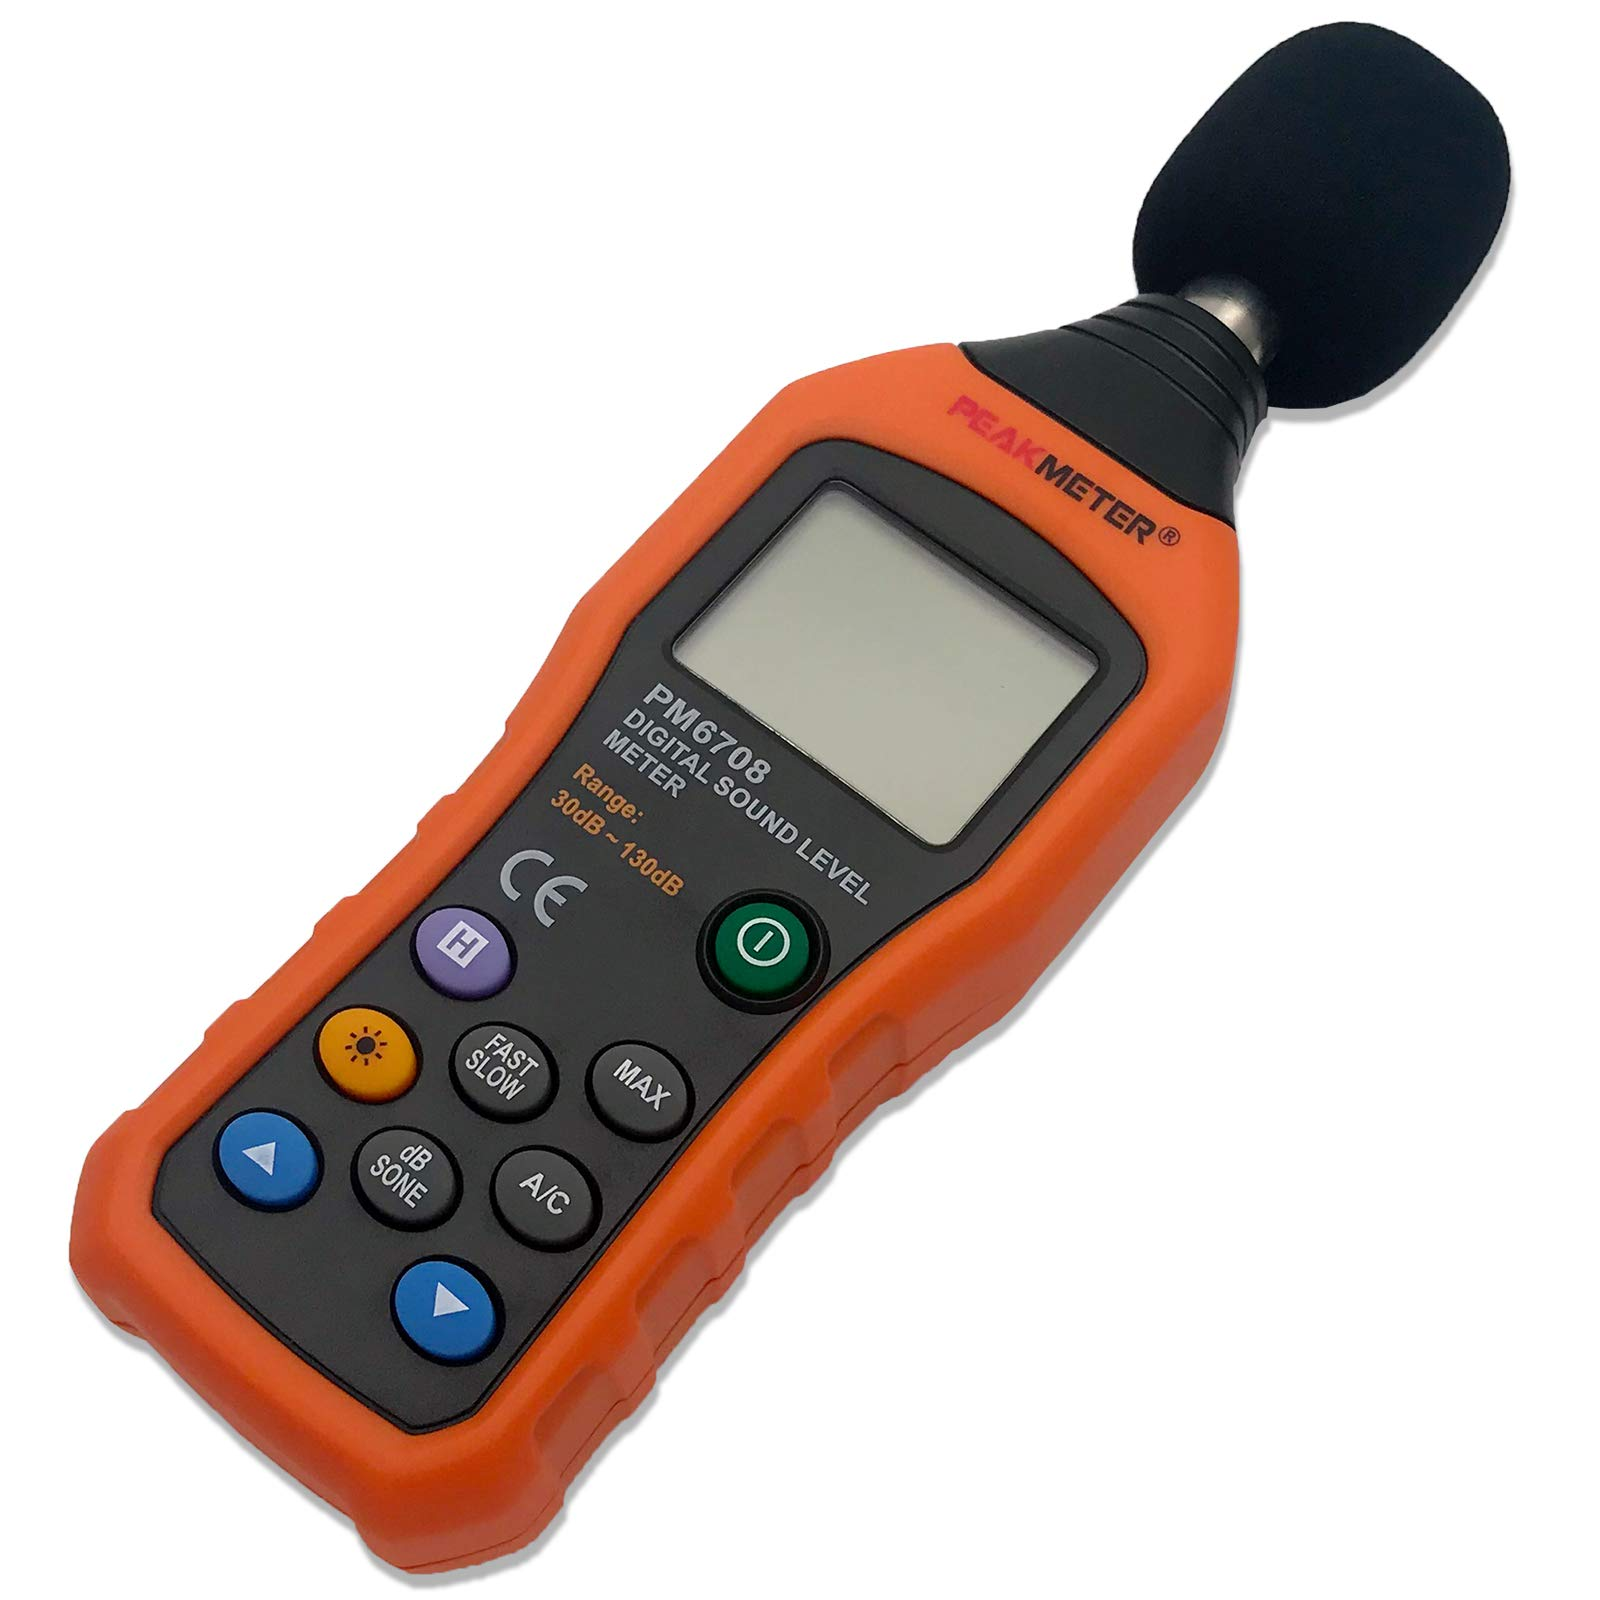 CBK LCD Digital Audio Decibel Meter Sound Level Meter Noise Level Meter Measurement 30 dB to 130 dB Date Hold Function A/C Mode for Sound Level Testing